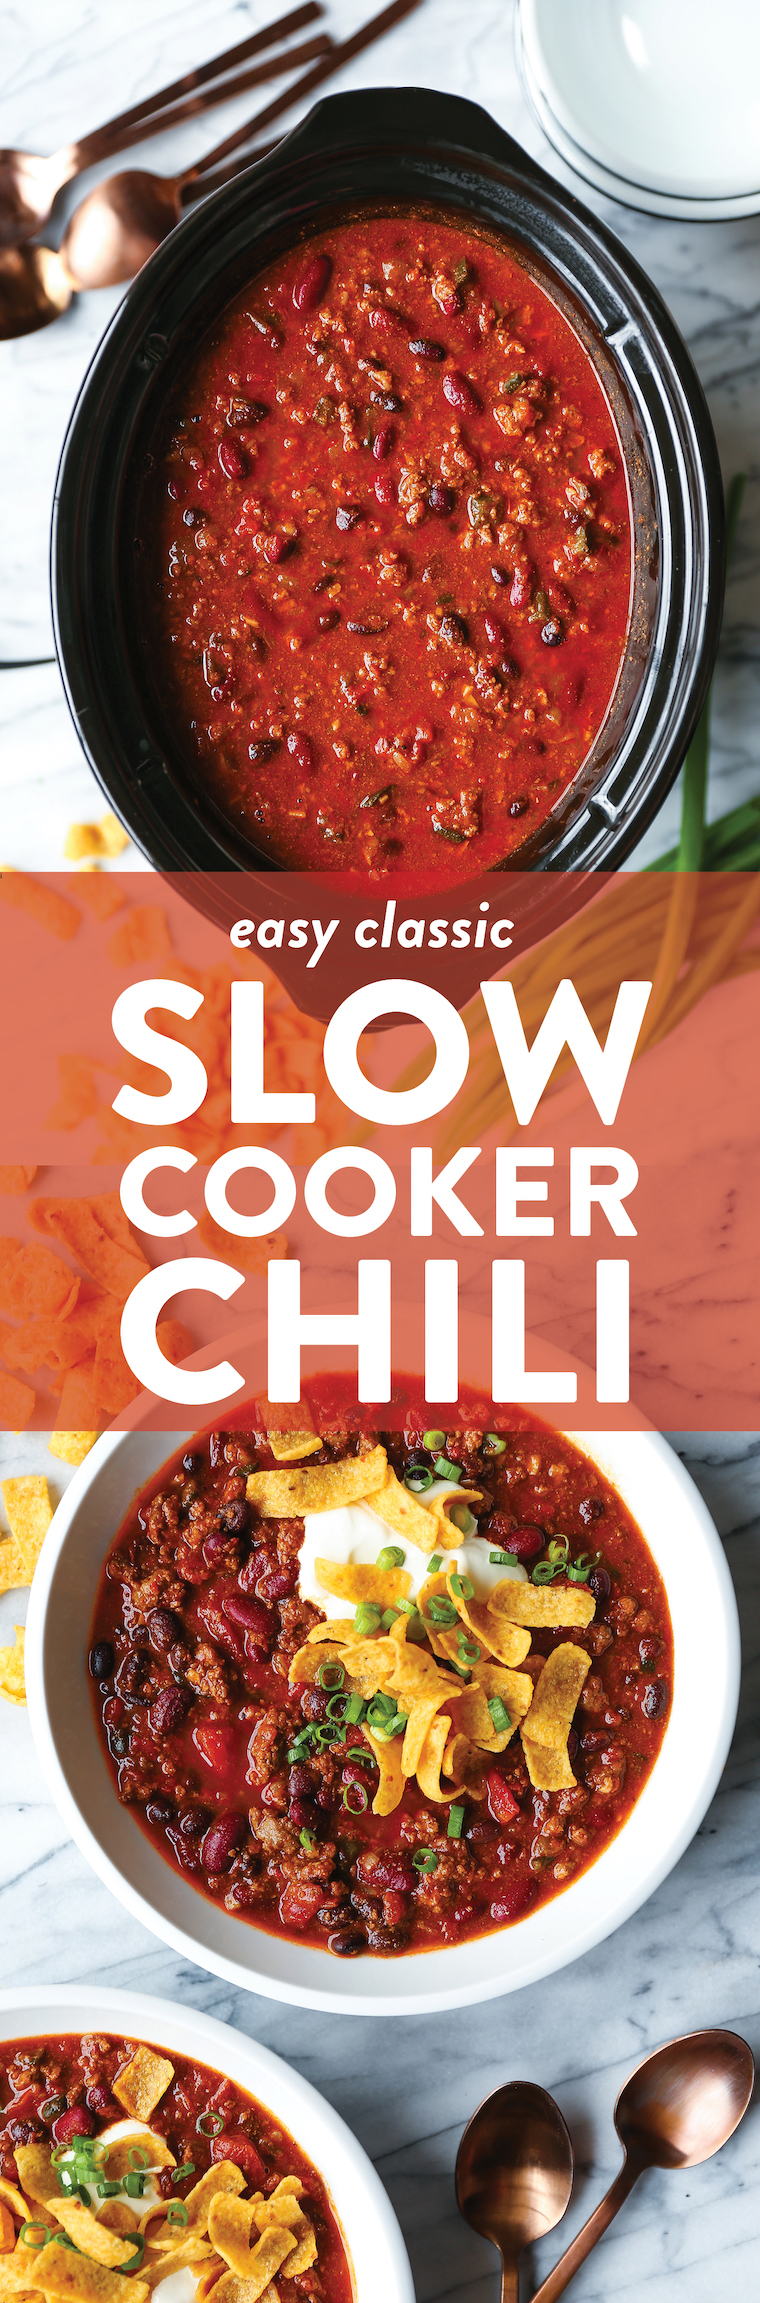 Easy Slow Cooker Chili - Come home to the best homemade chili! It's an amazingly hearty, cozy beef chili that cooks low and slow for 8 hrs in the crockpot!